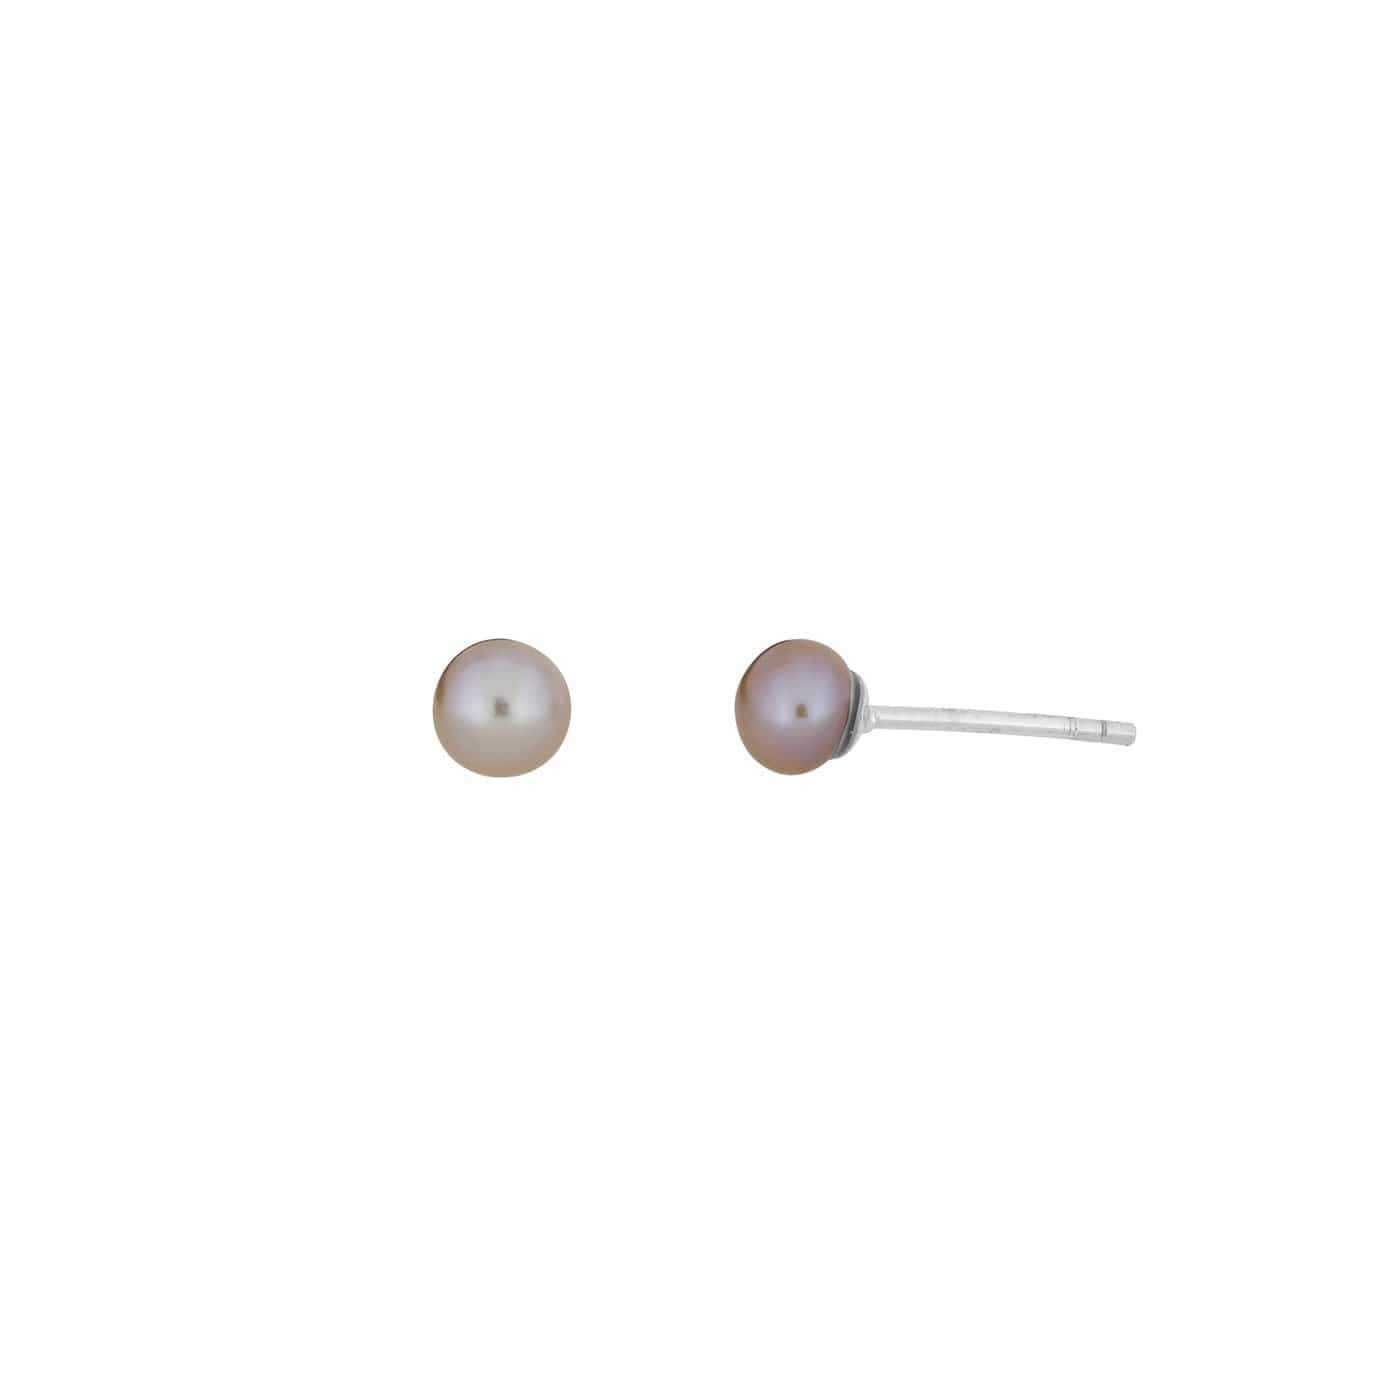 4mm Pink Pearl Stud Earrings